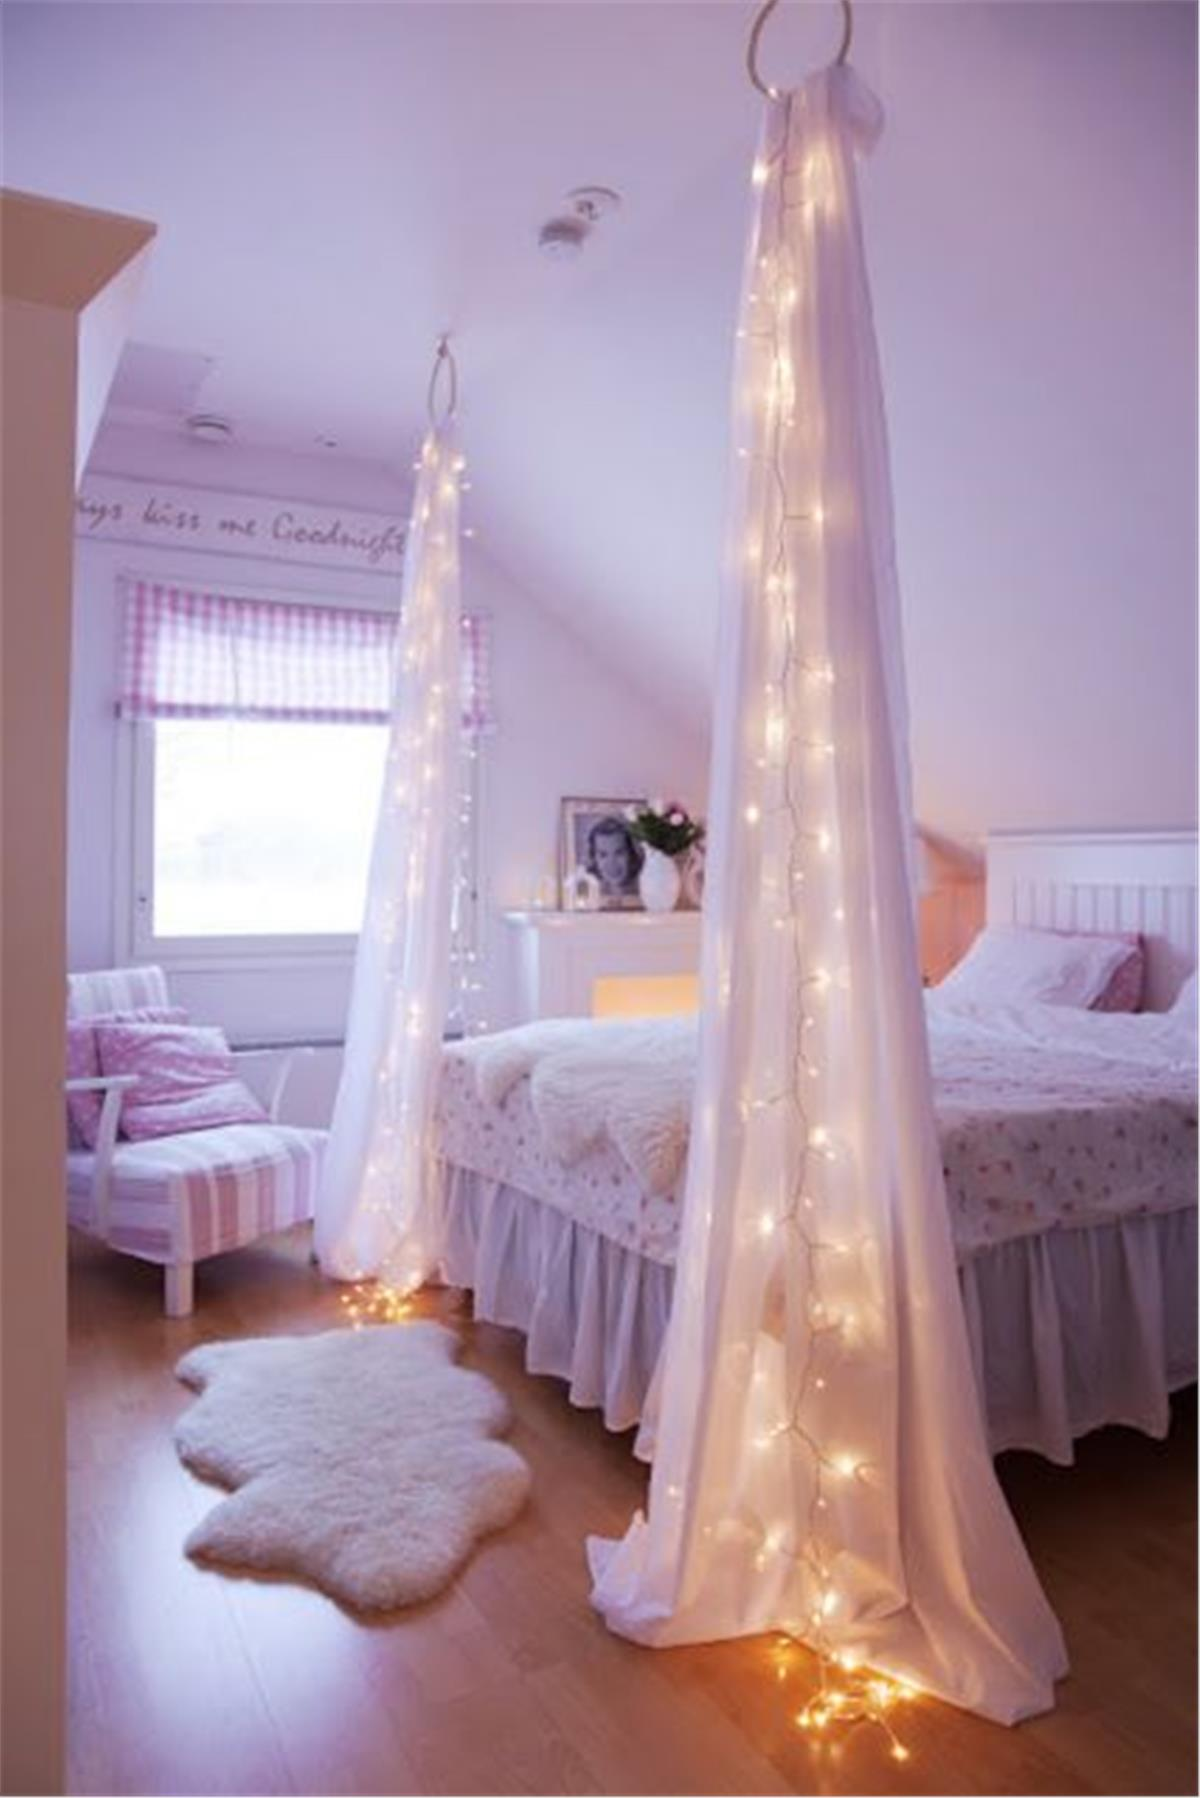 Design Teenage Girl Room Ideas 50 stunning ideas for a teen girls bedroom 2017 1 fairy drapes